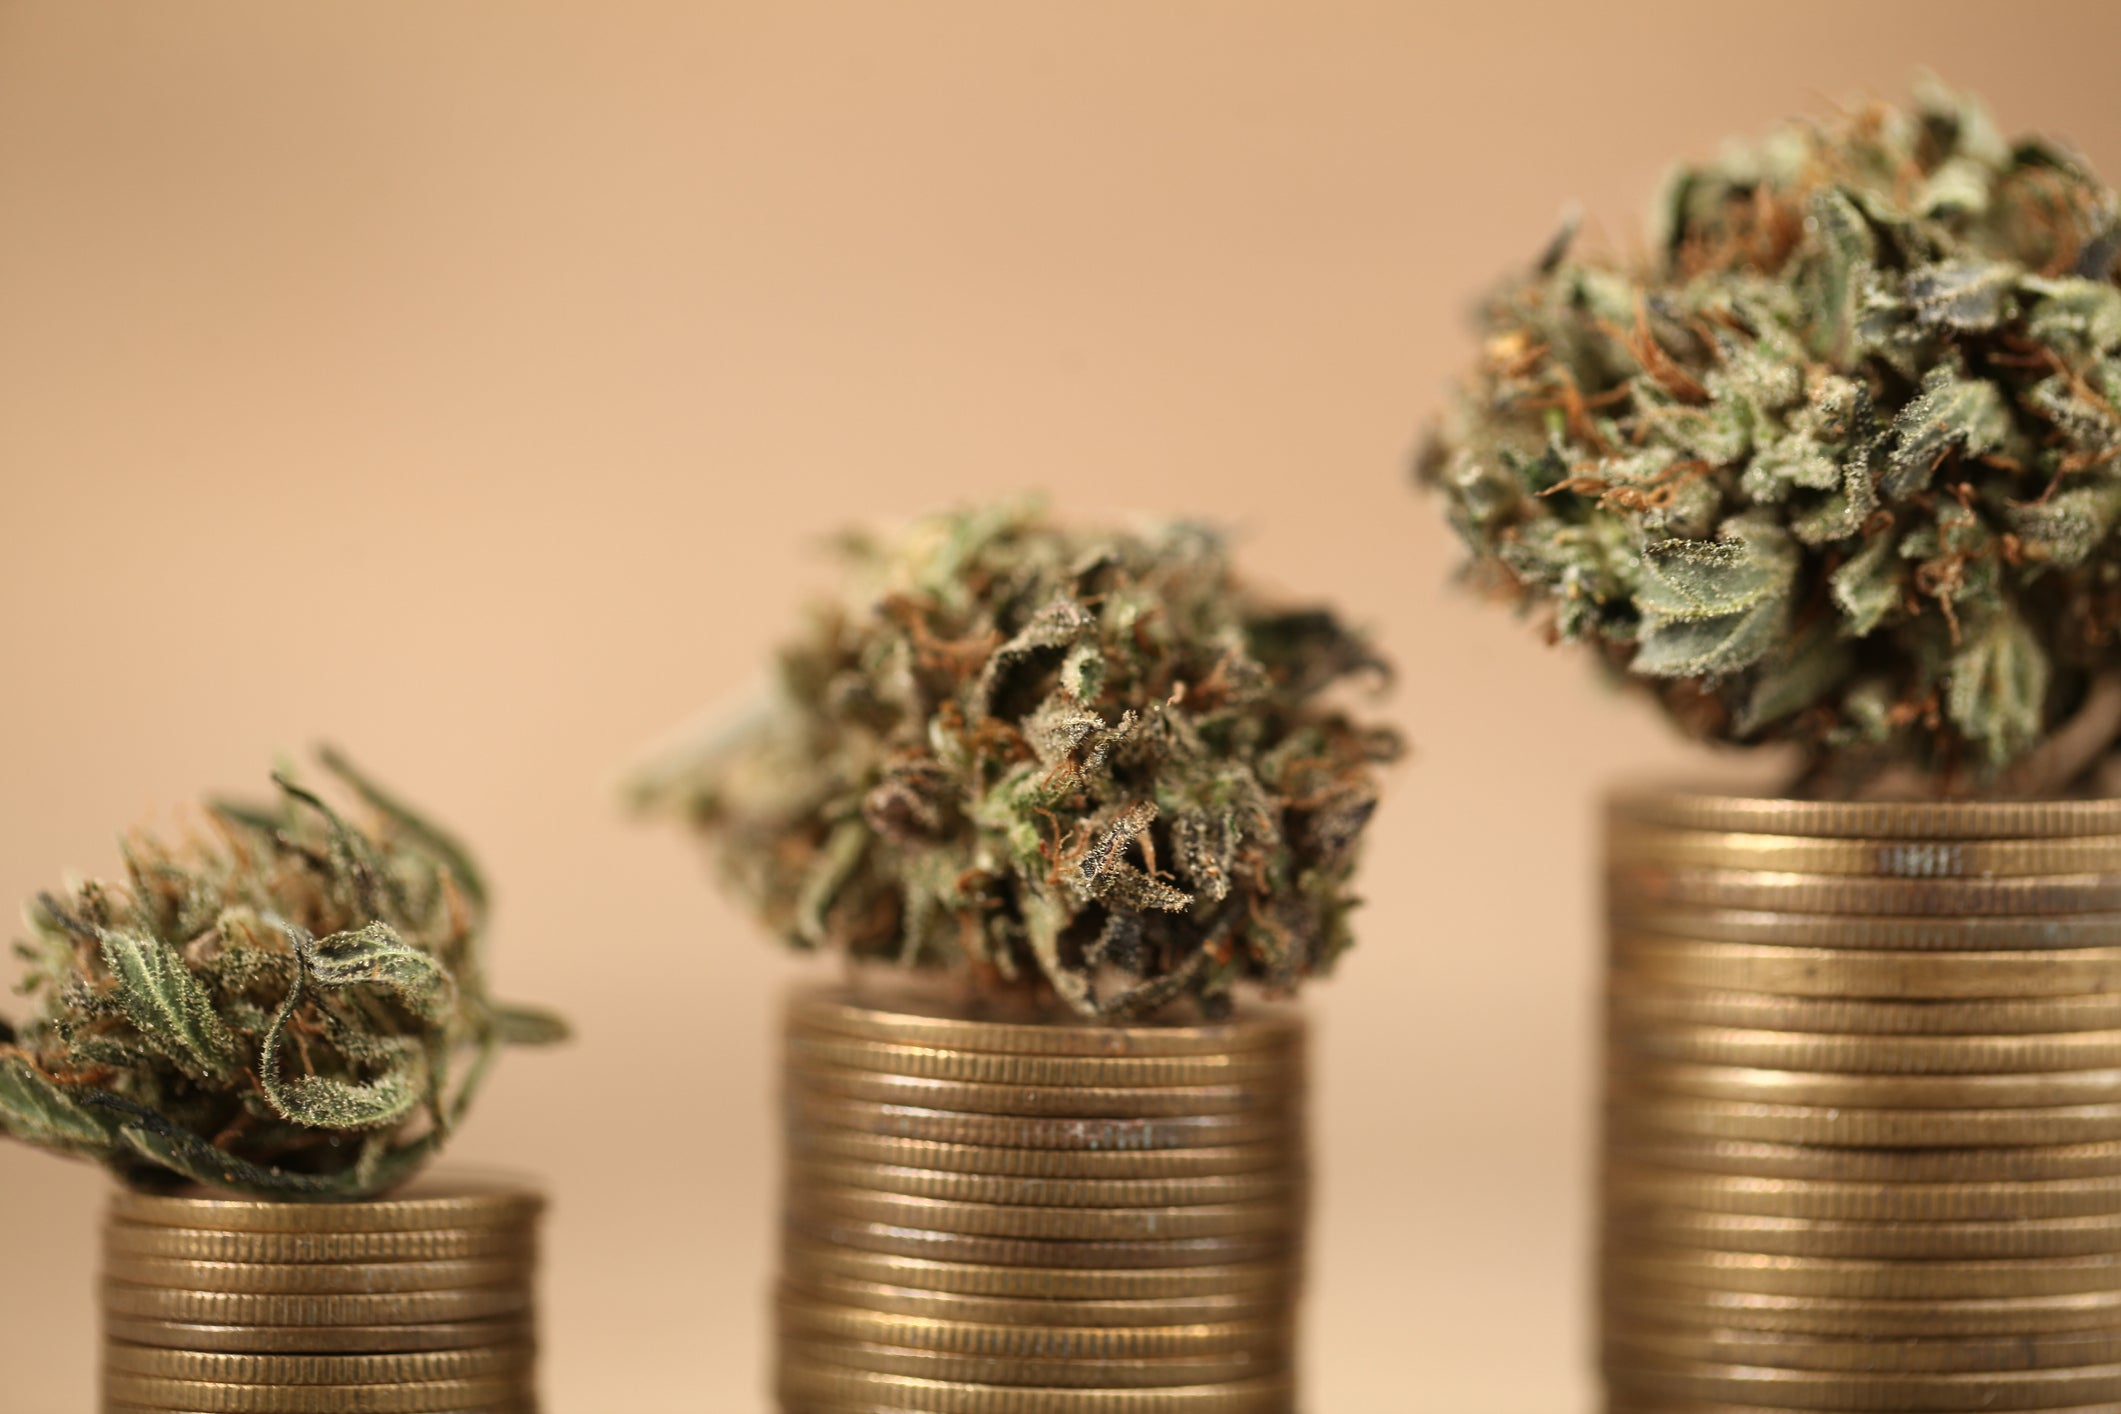 Why Sundial Growers Stock Soared Today